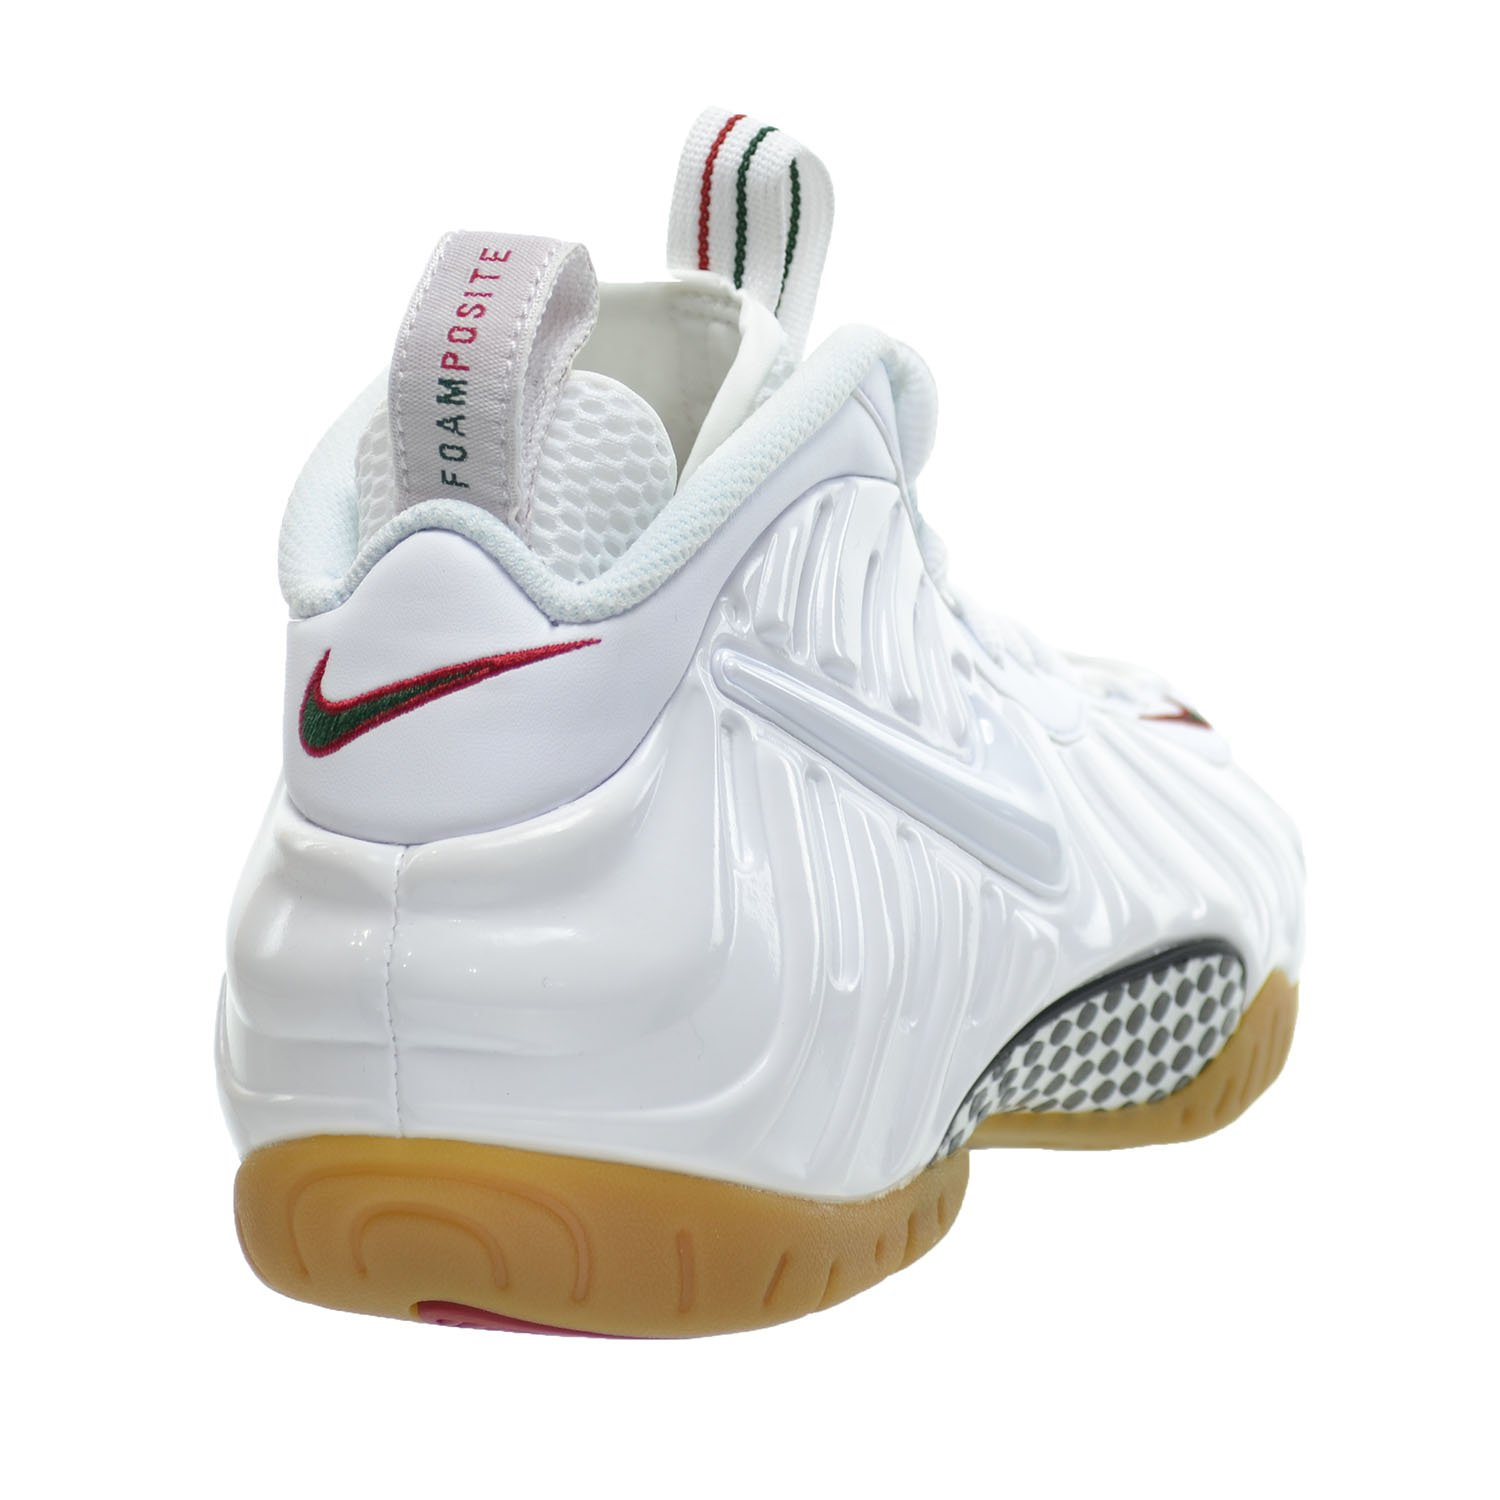 newest collection 3c990 2202b Amazon.com   Nike Air Foamposite Pro Men s Shoes White White-Gym Red-Green  624041-102 (7.5 D(M) US)   Shoes